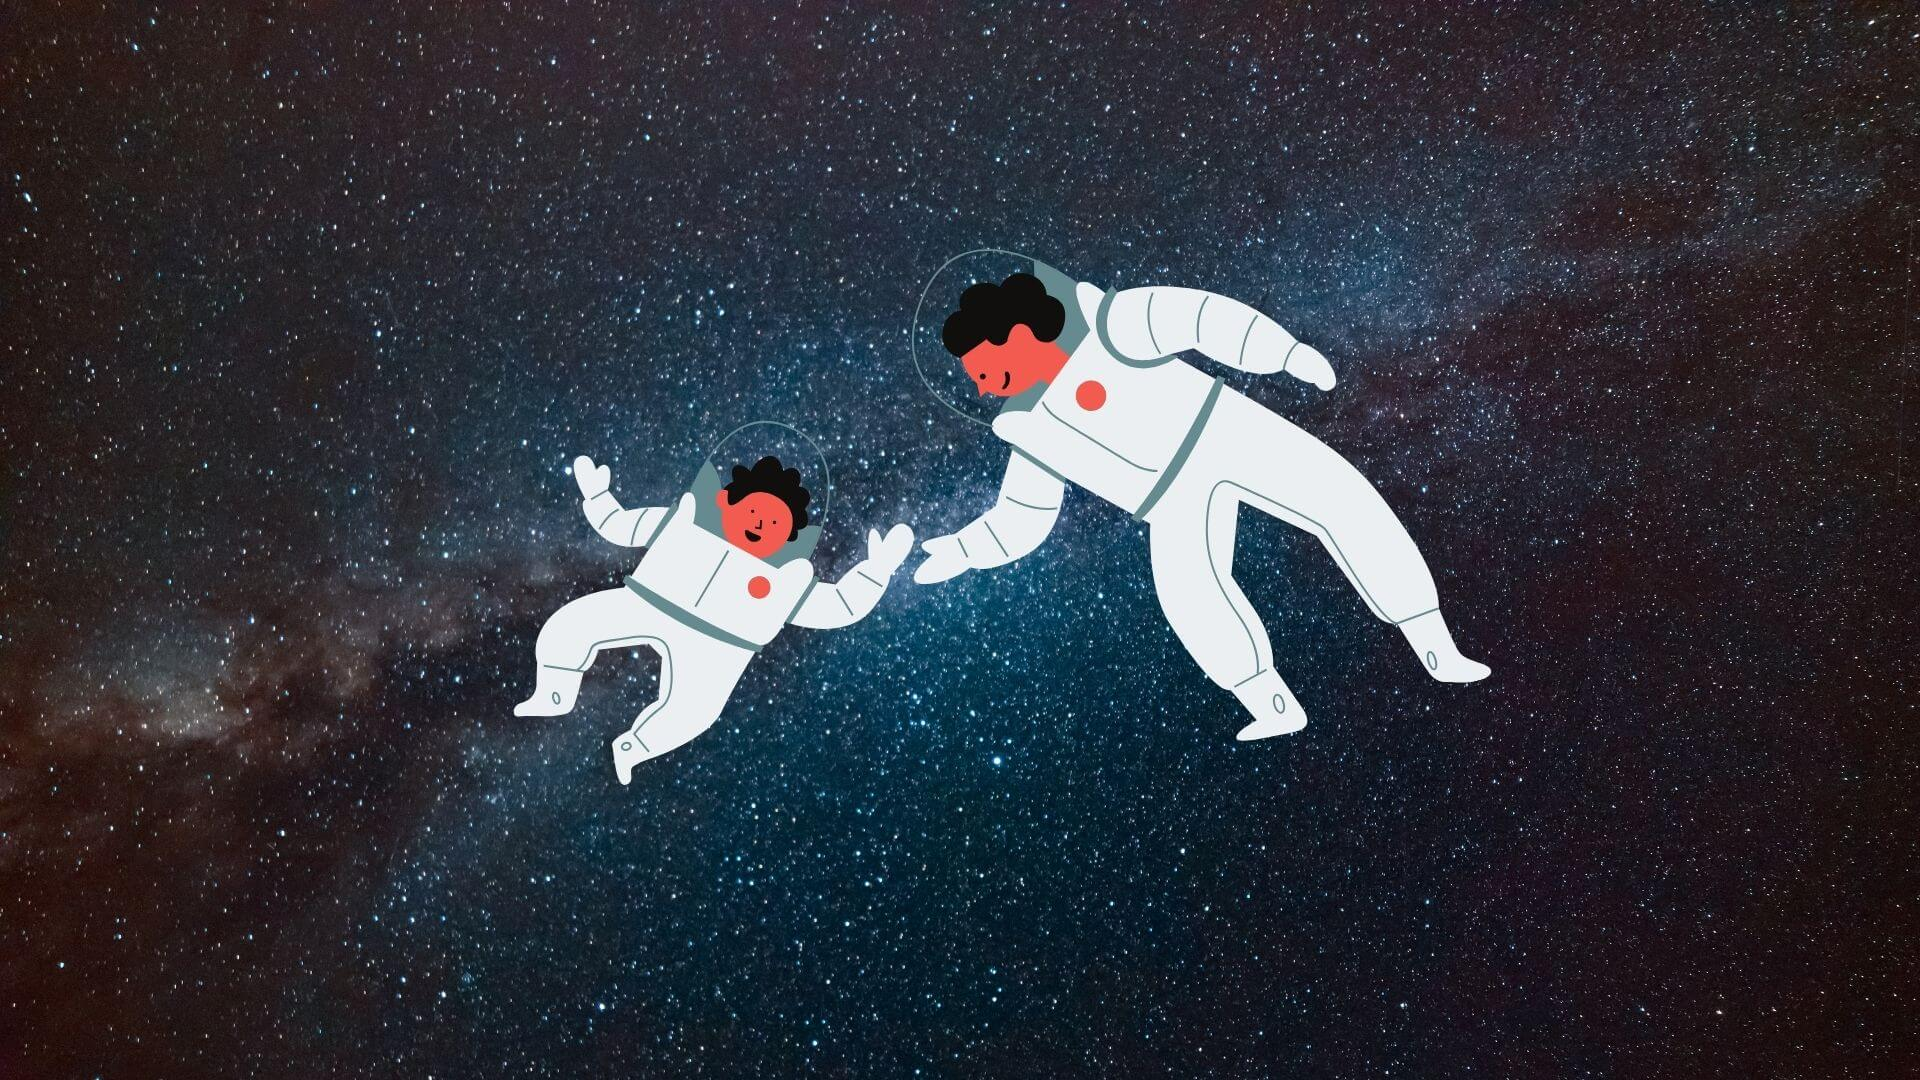 What happens if you don't wear a spacesuit